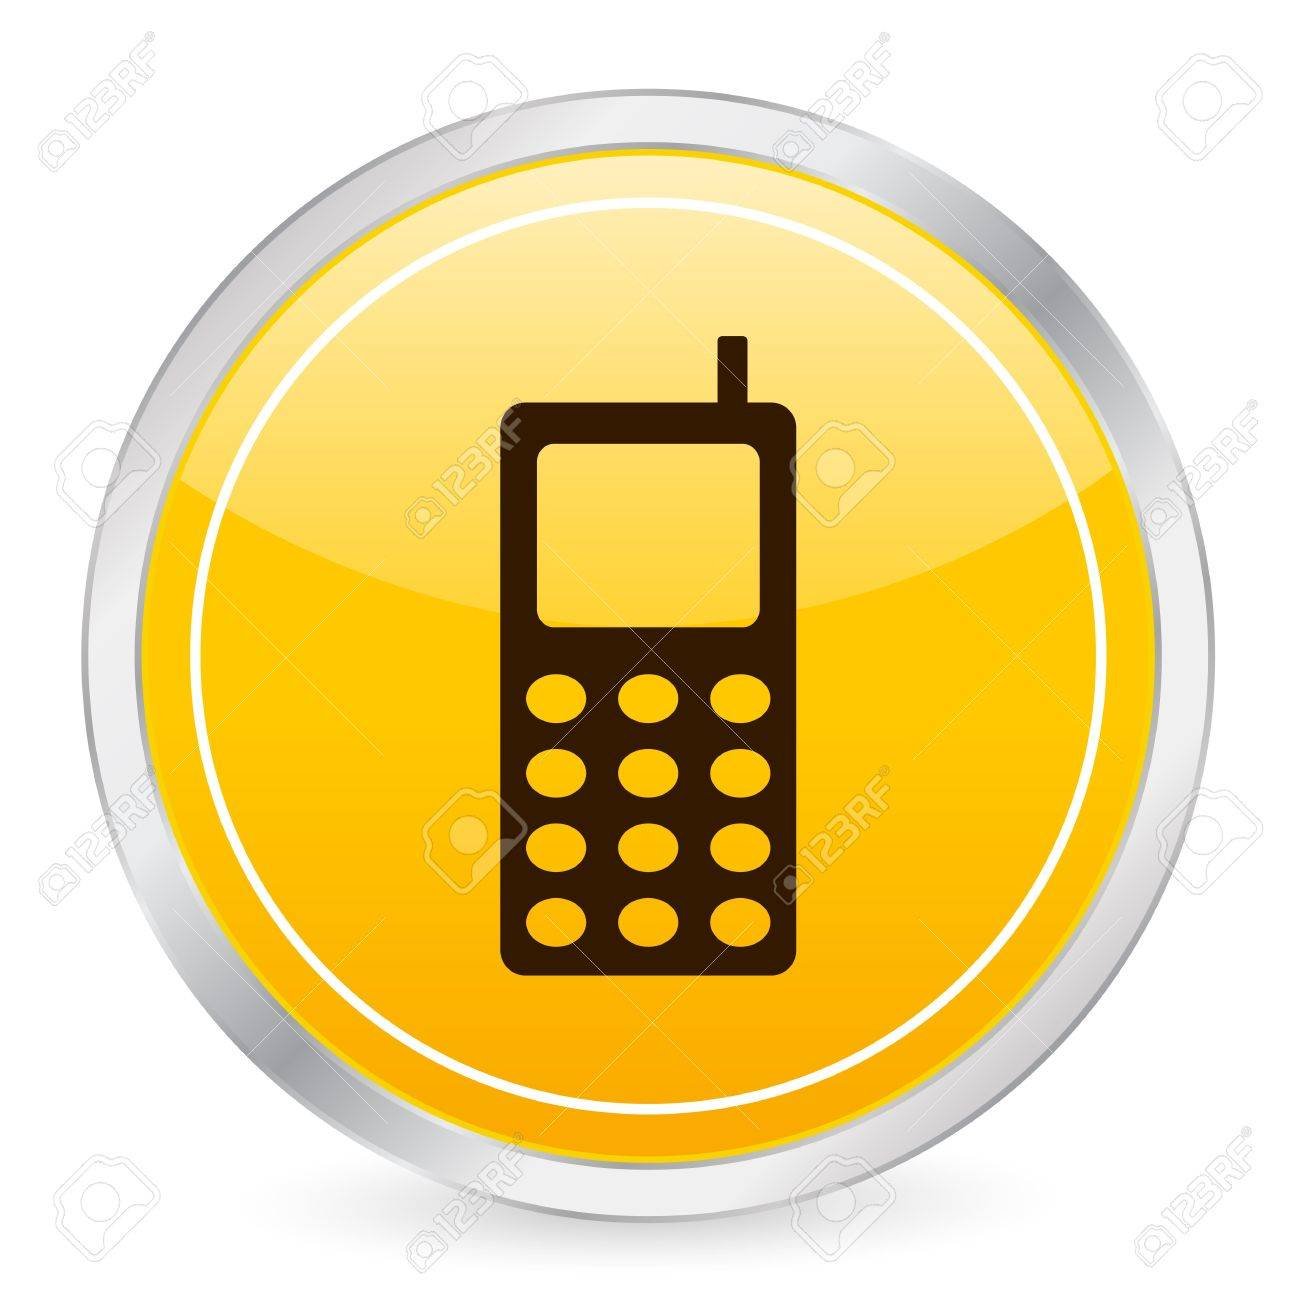 Mobile phone yellow circle icon